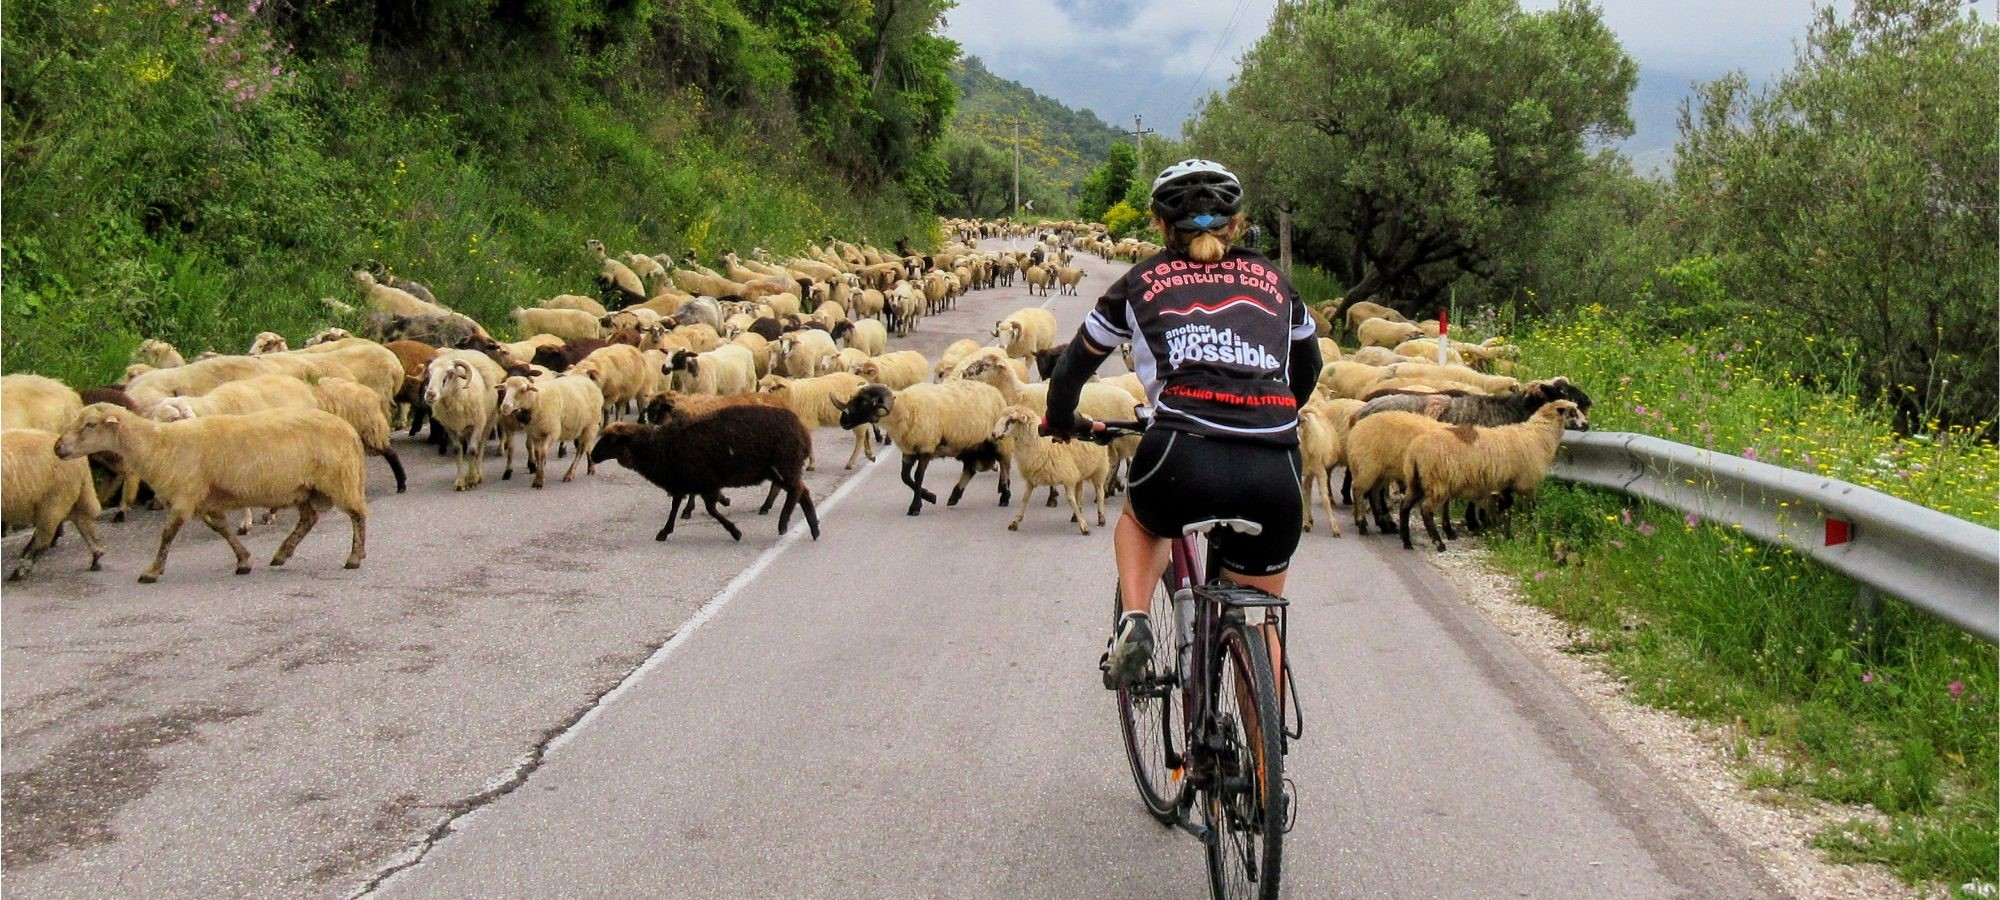 Photos from our Albania - Classic Cycling Holiday